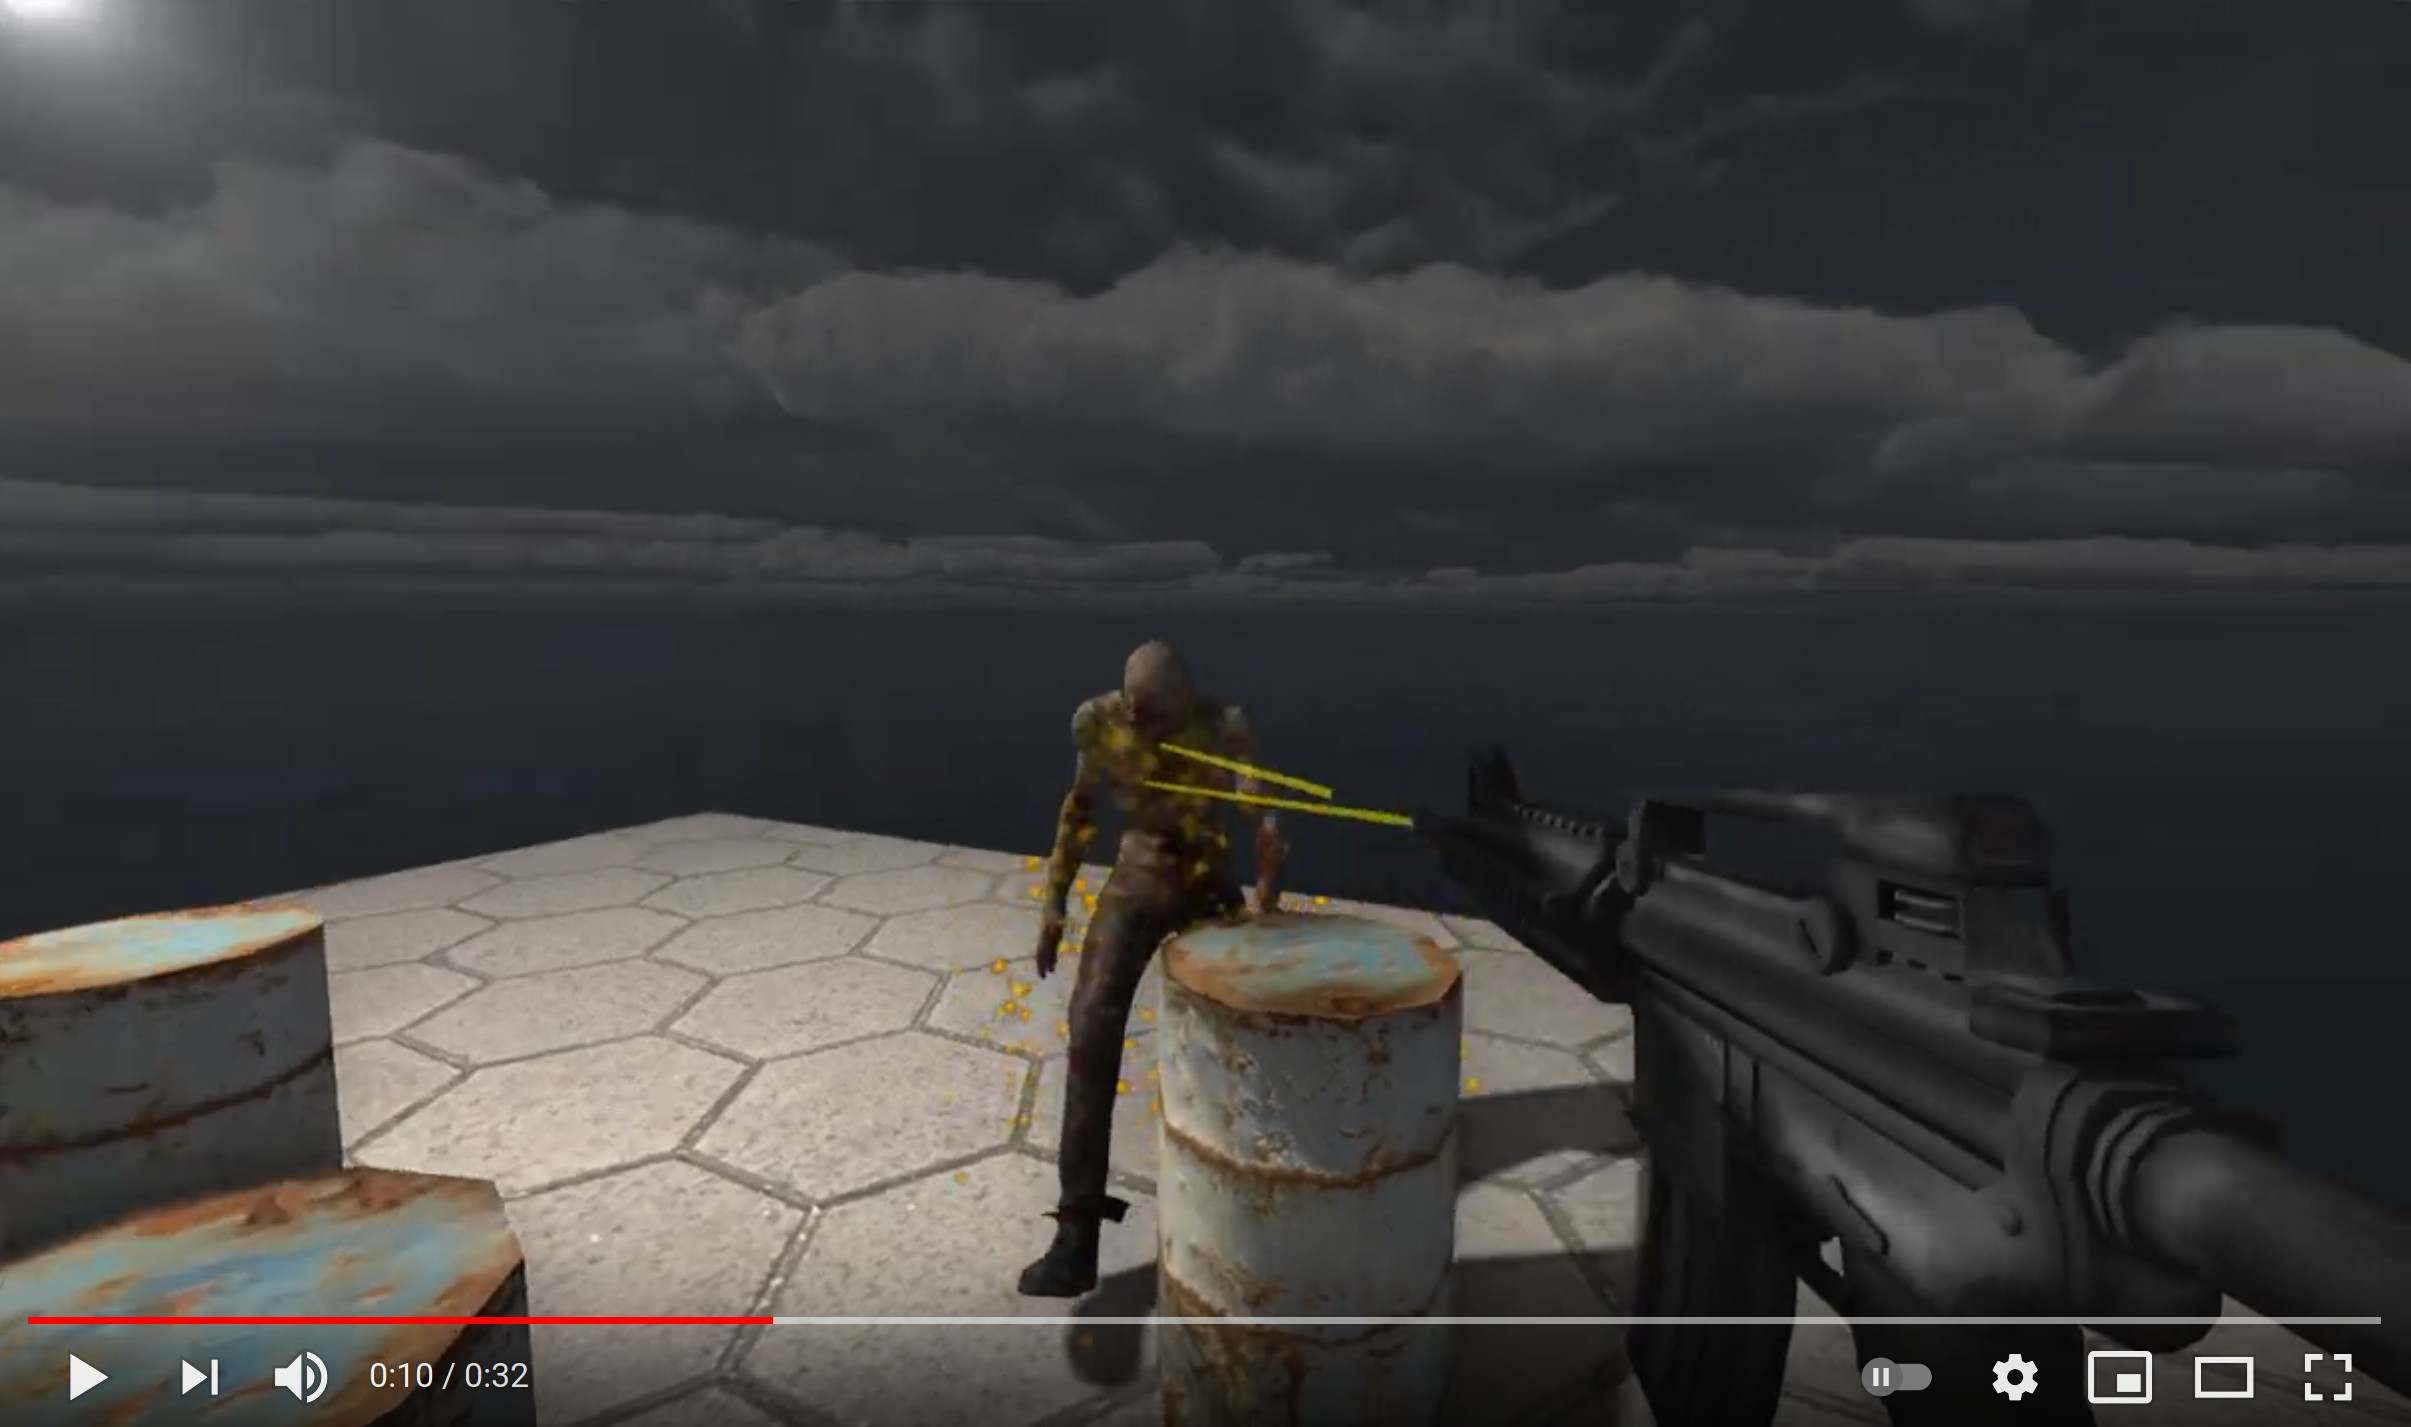 Demo of the third part: shooting at a moving zombie